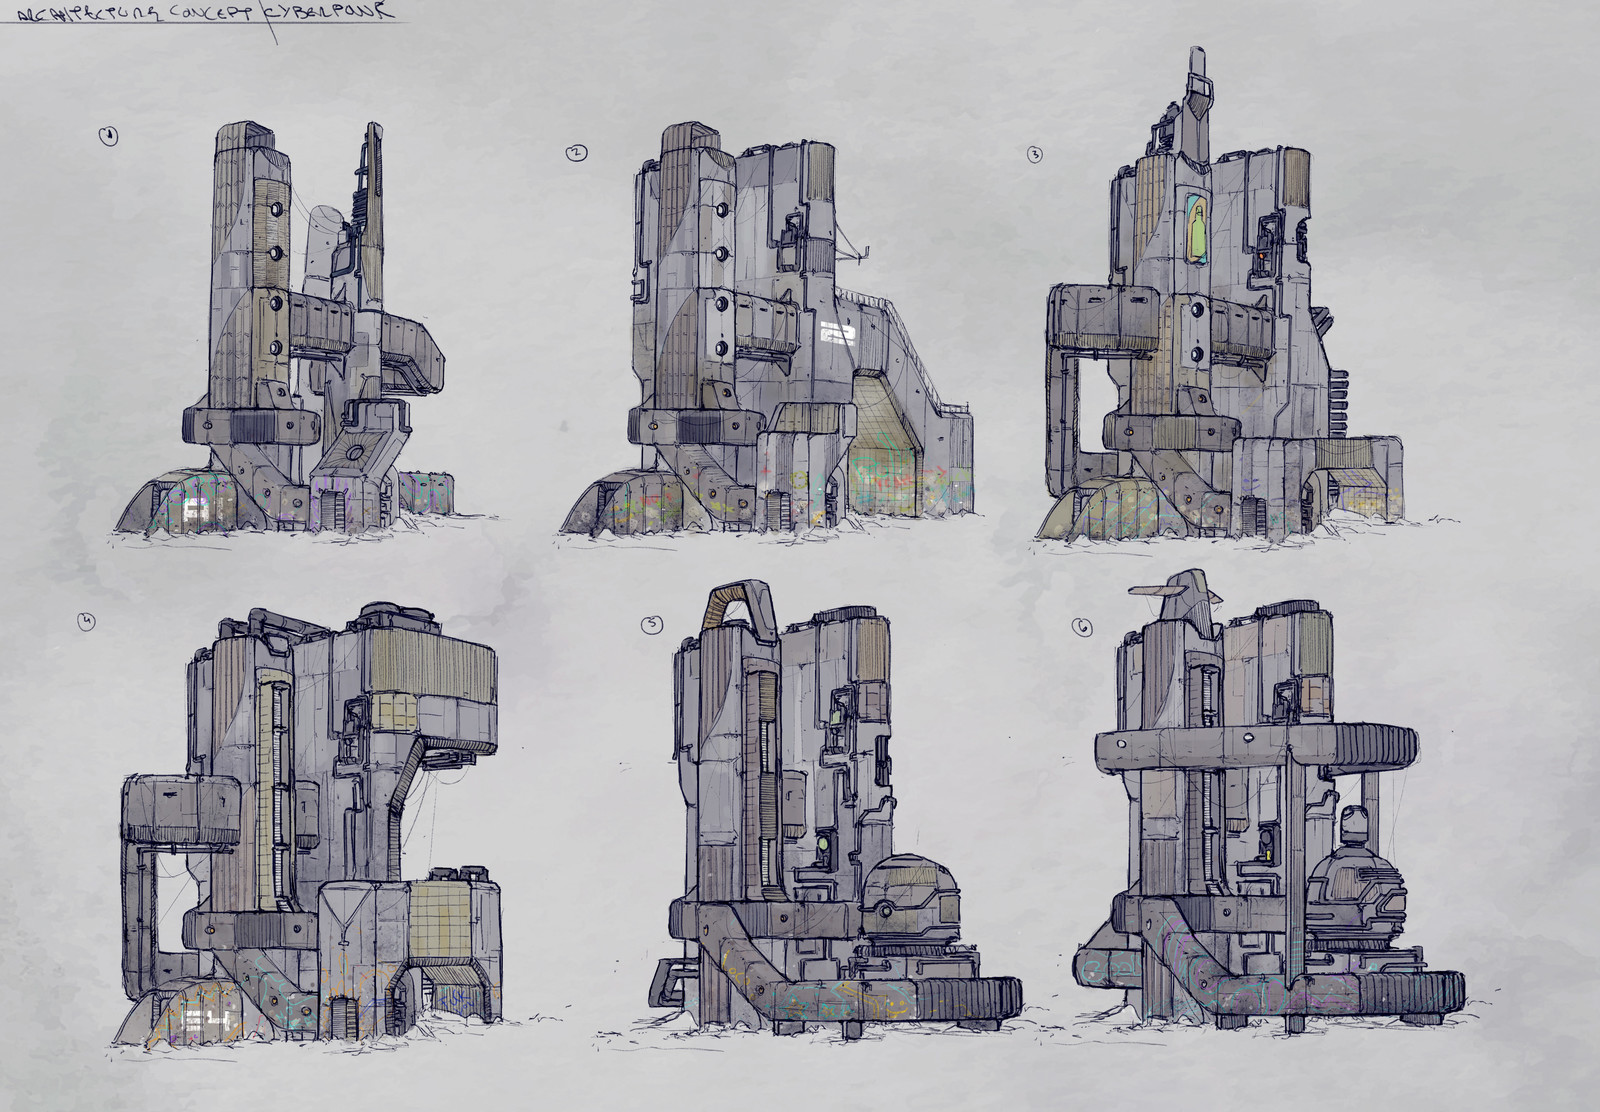 City structures concepts